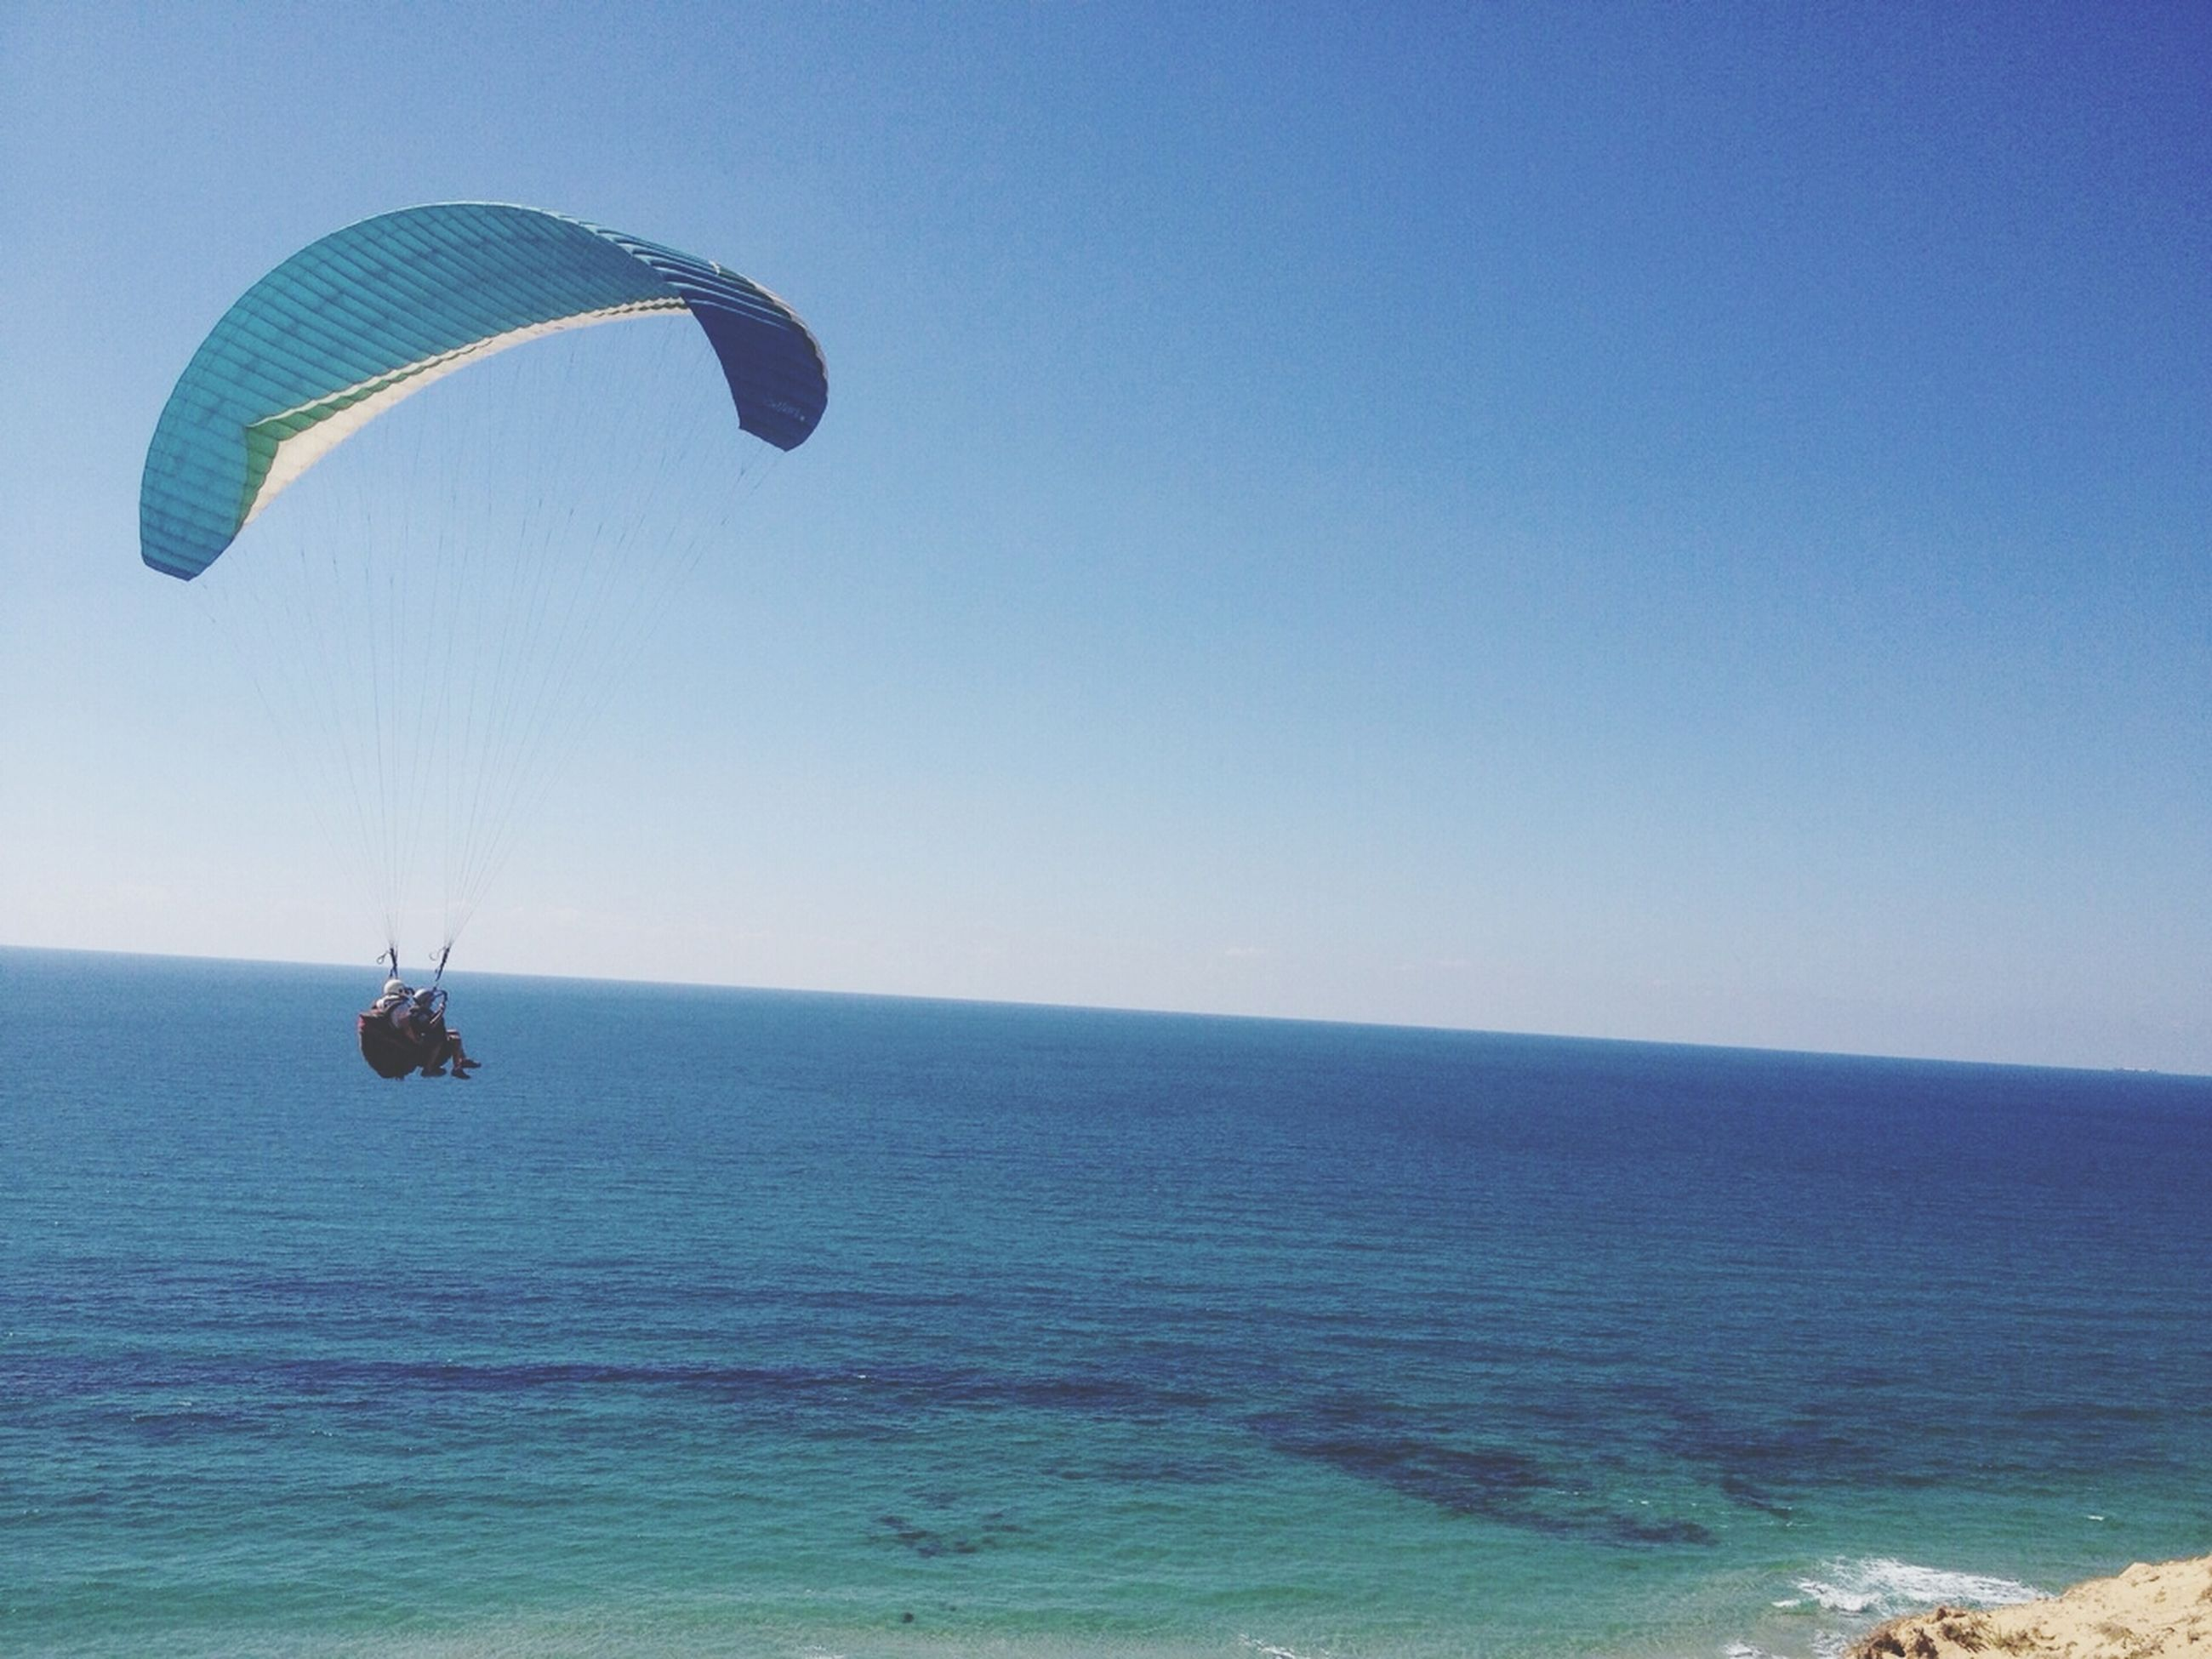 sea, water, clear sky, horizon over water, beach, parachute, blue, tranquility, tranquil scene, copy space, scenics, extreme sports, mid-air, adventure, vacations, flying, sport, leisure activity, beauty in nature, nature